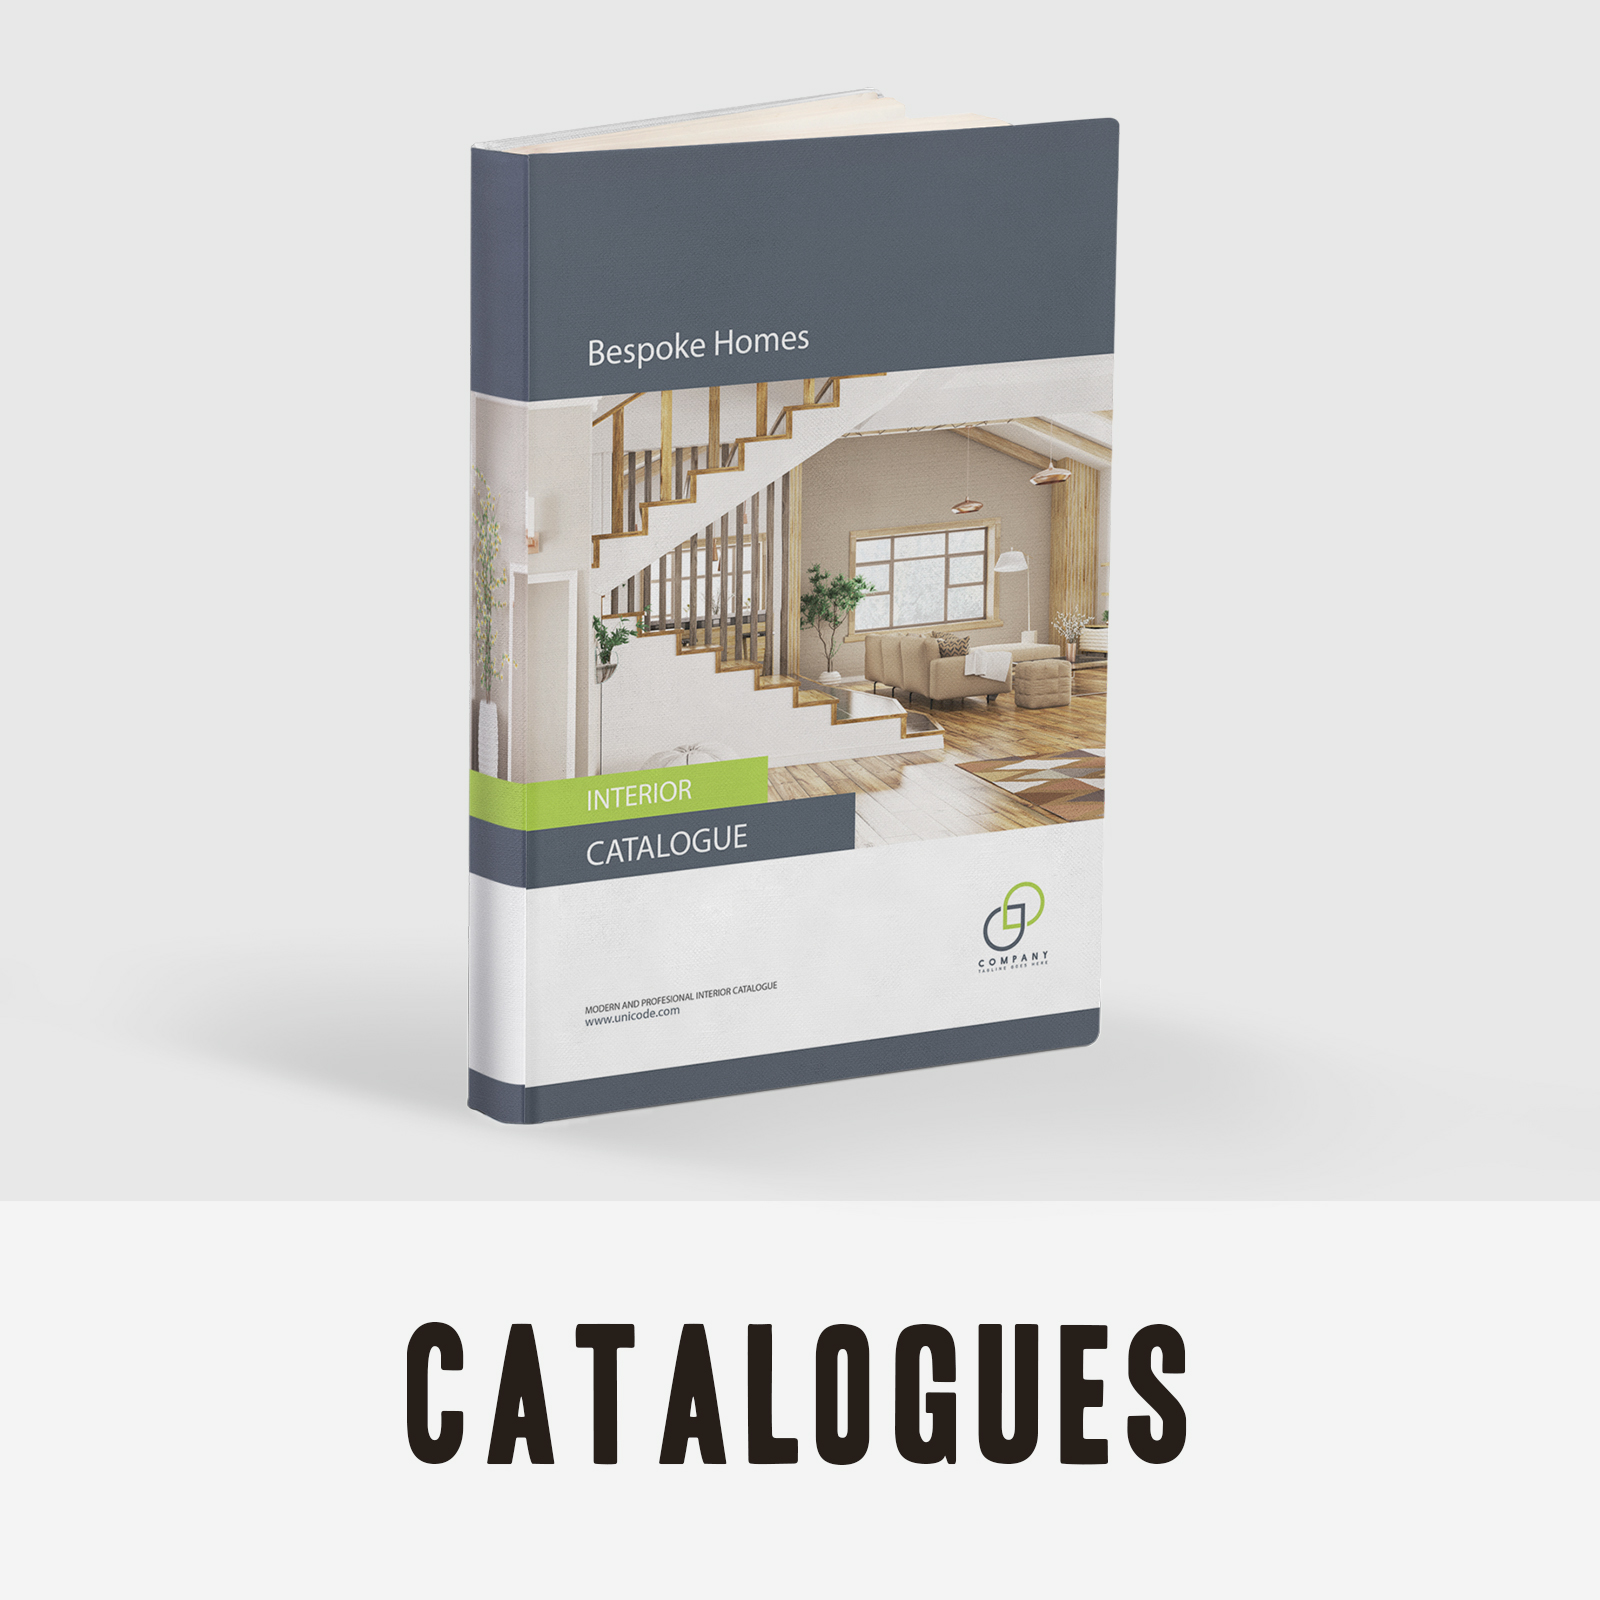 Catalogues - Housing and Developments